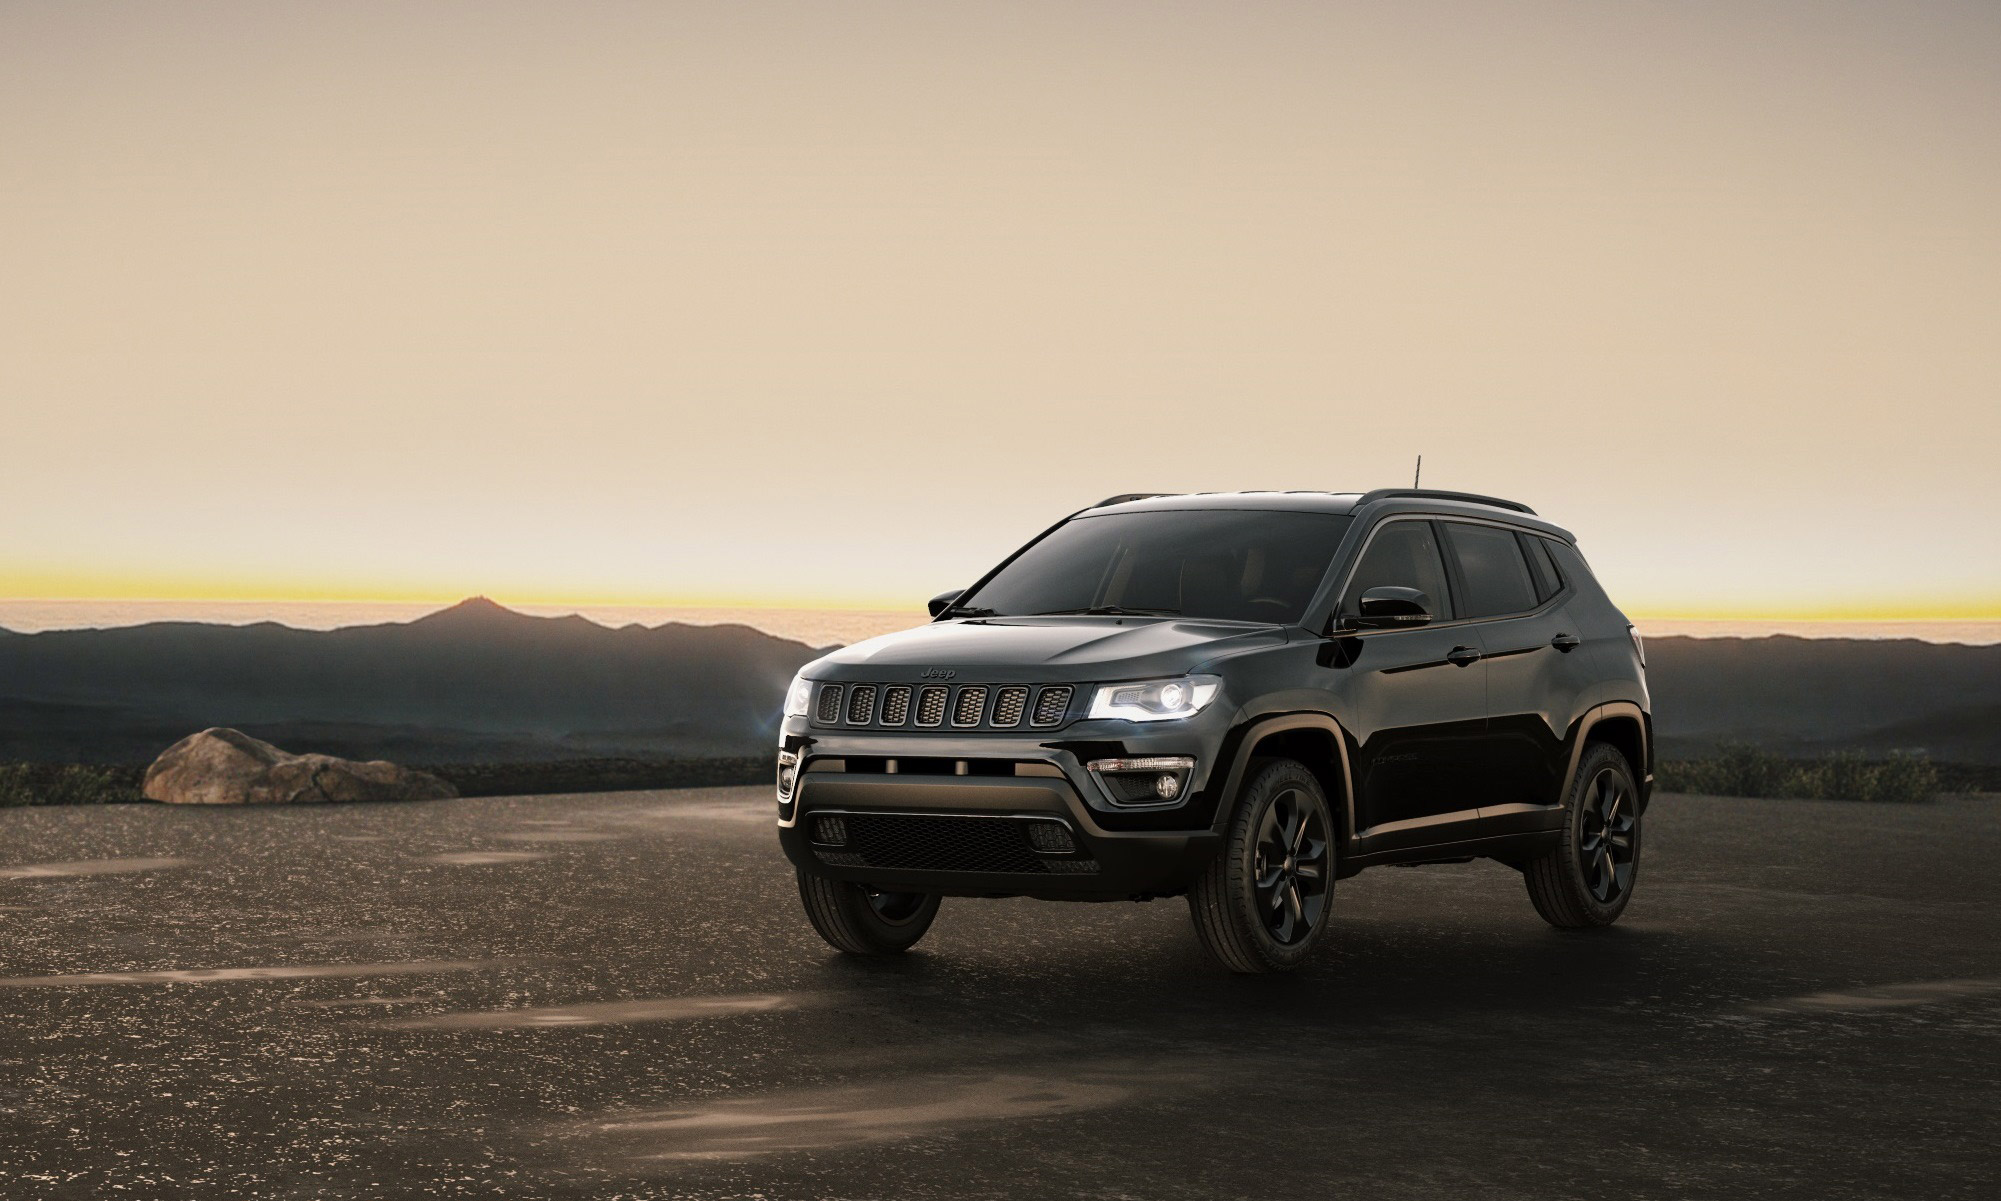 jeep compass night eagle 2017, hd cars, 4k wallpapers, images